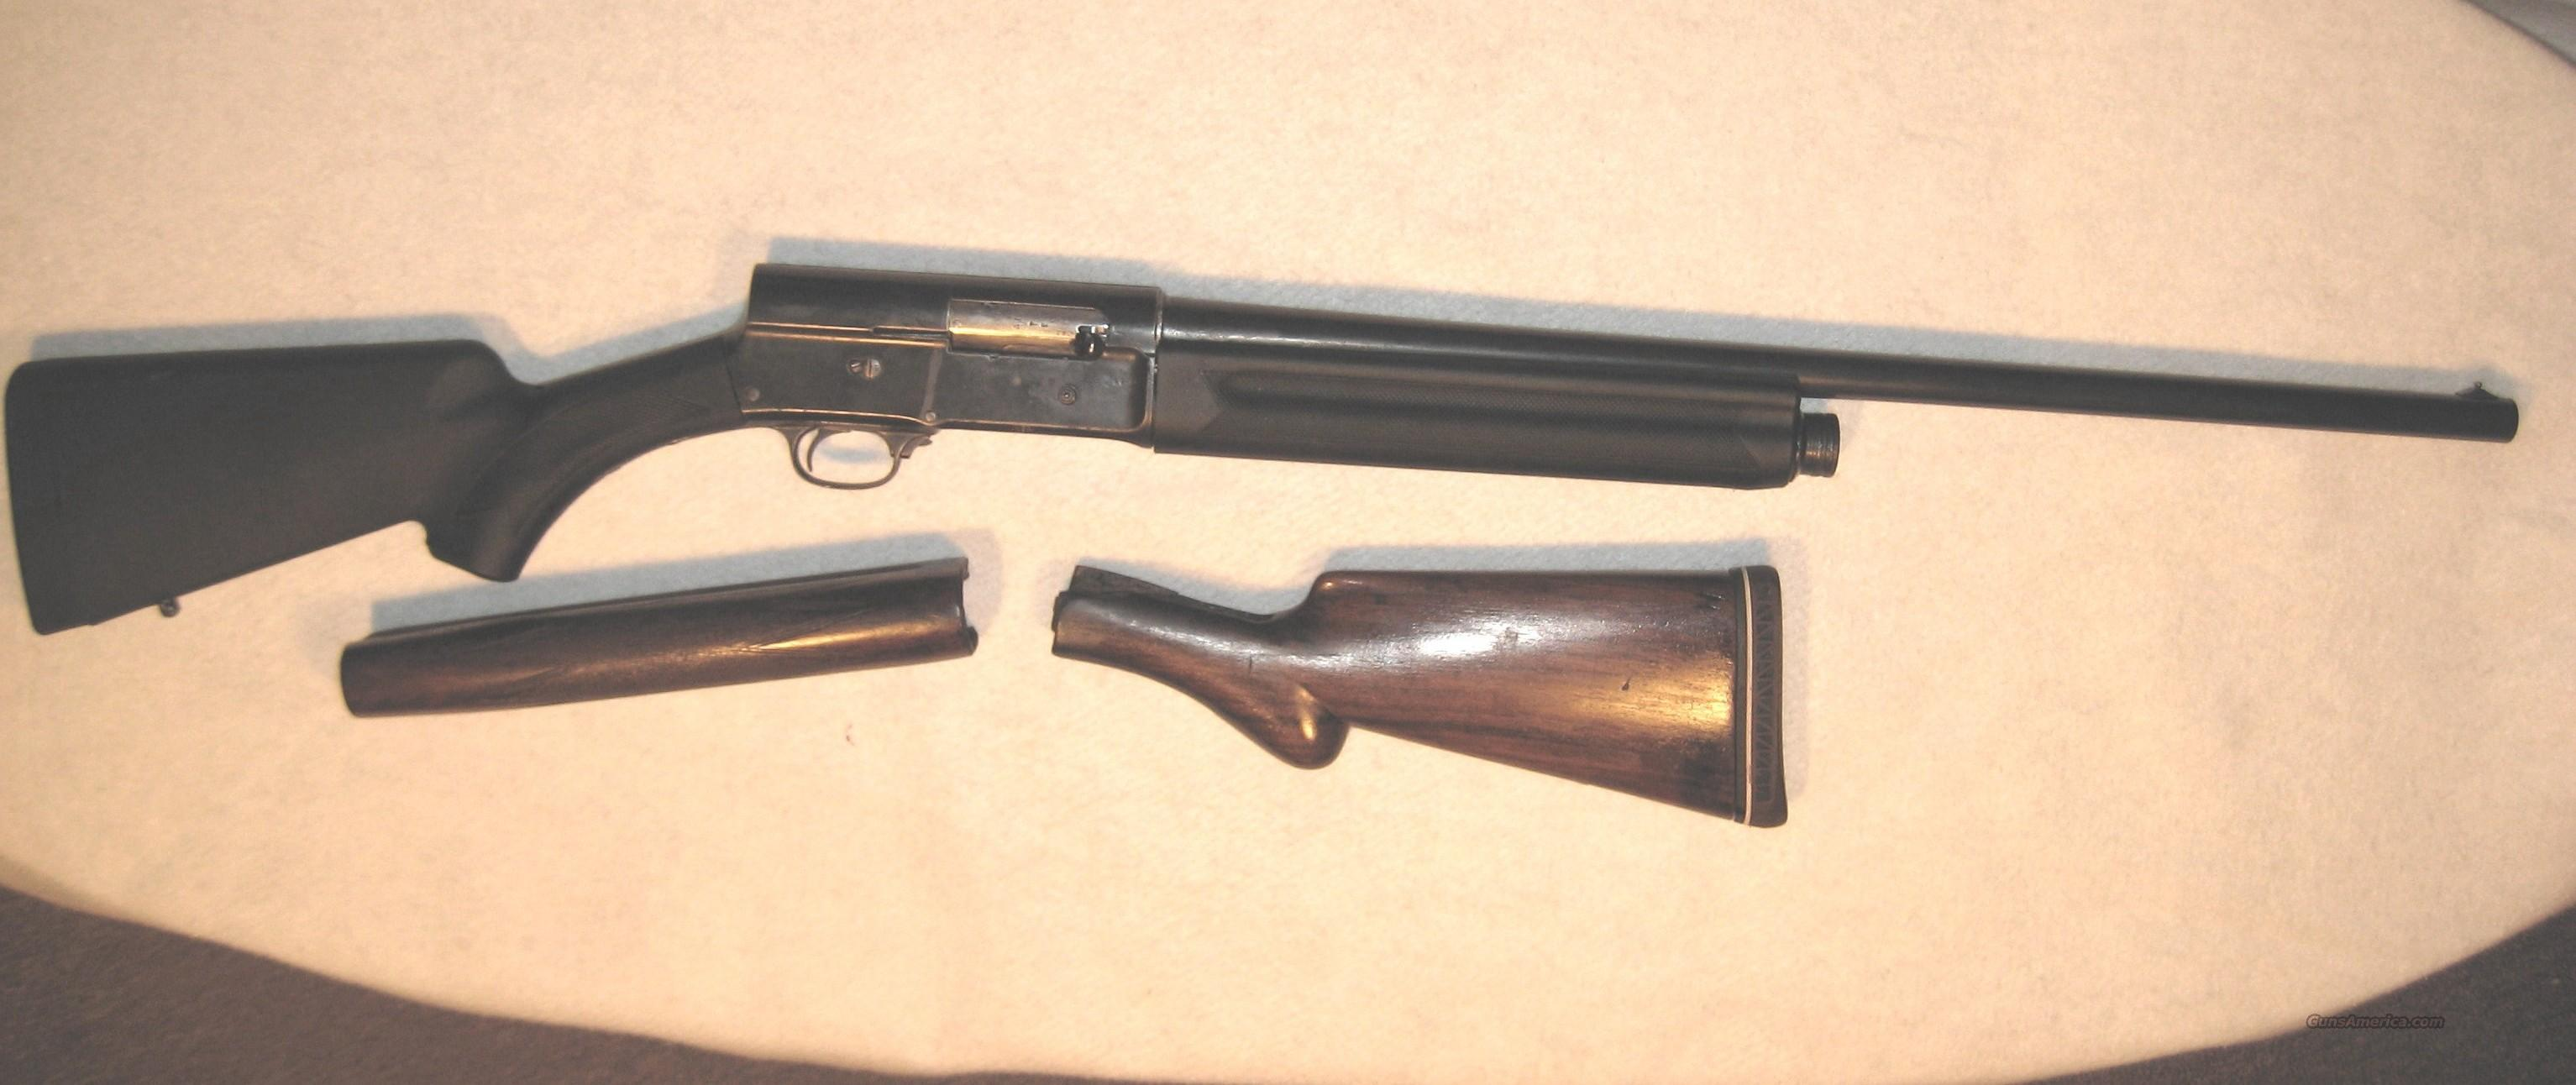 Browning A5 12GA Pre 1939  Guns > Shotguns > Browning Shotguns > Autoloaders > Hunting